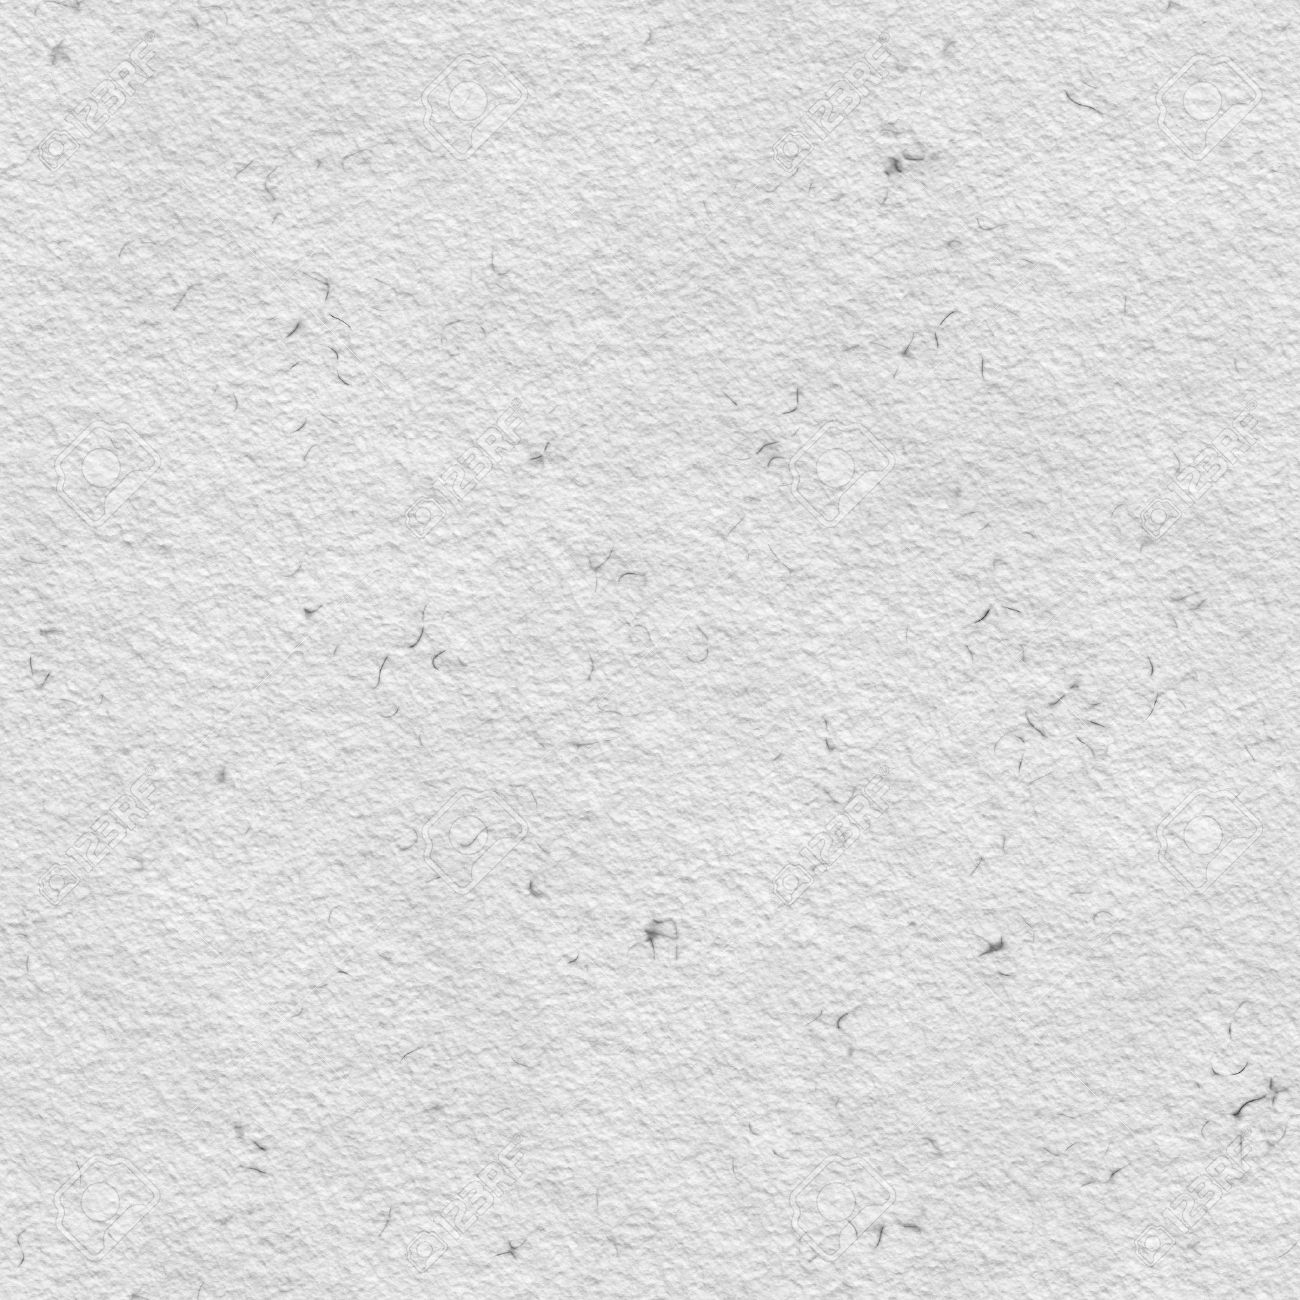 Textured Seamless White Paper Photo Picture And Royalty – White Paper